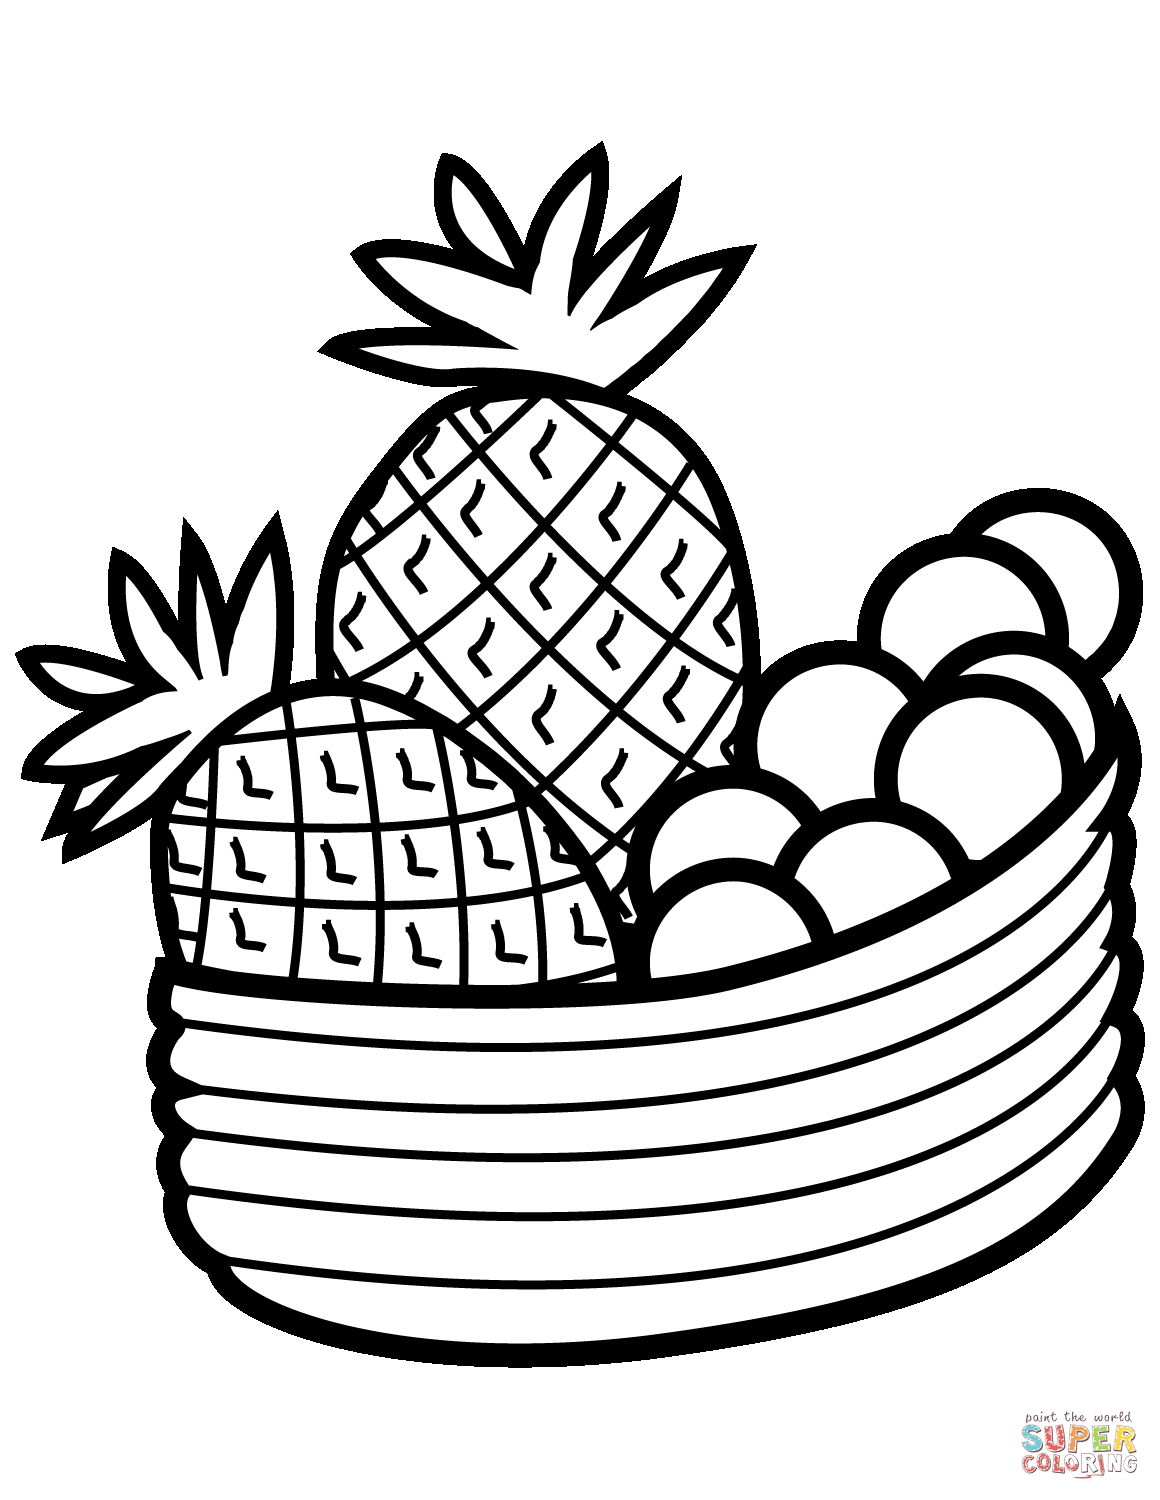 how to draw fruit in a bowl fruit bowl drawing at getdrawings free download to how a draw fruit in bowl